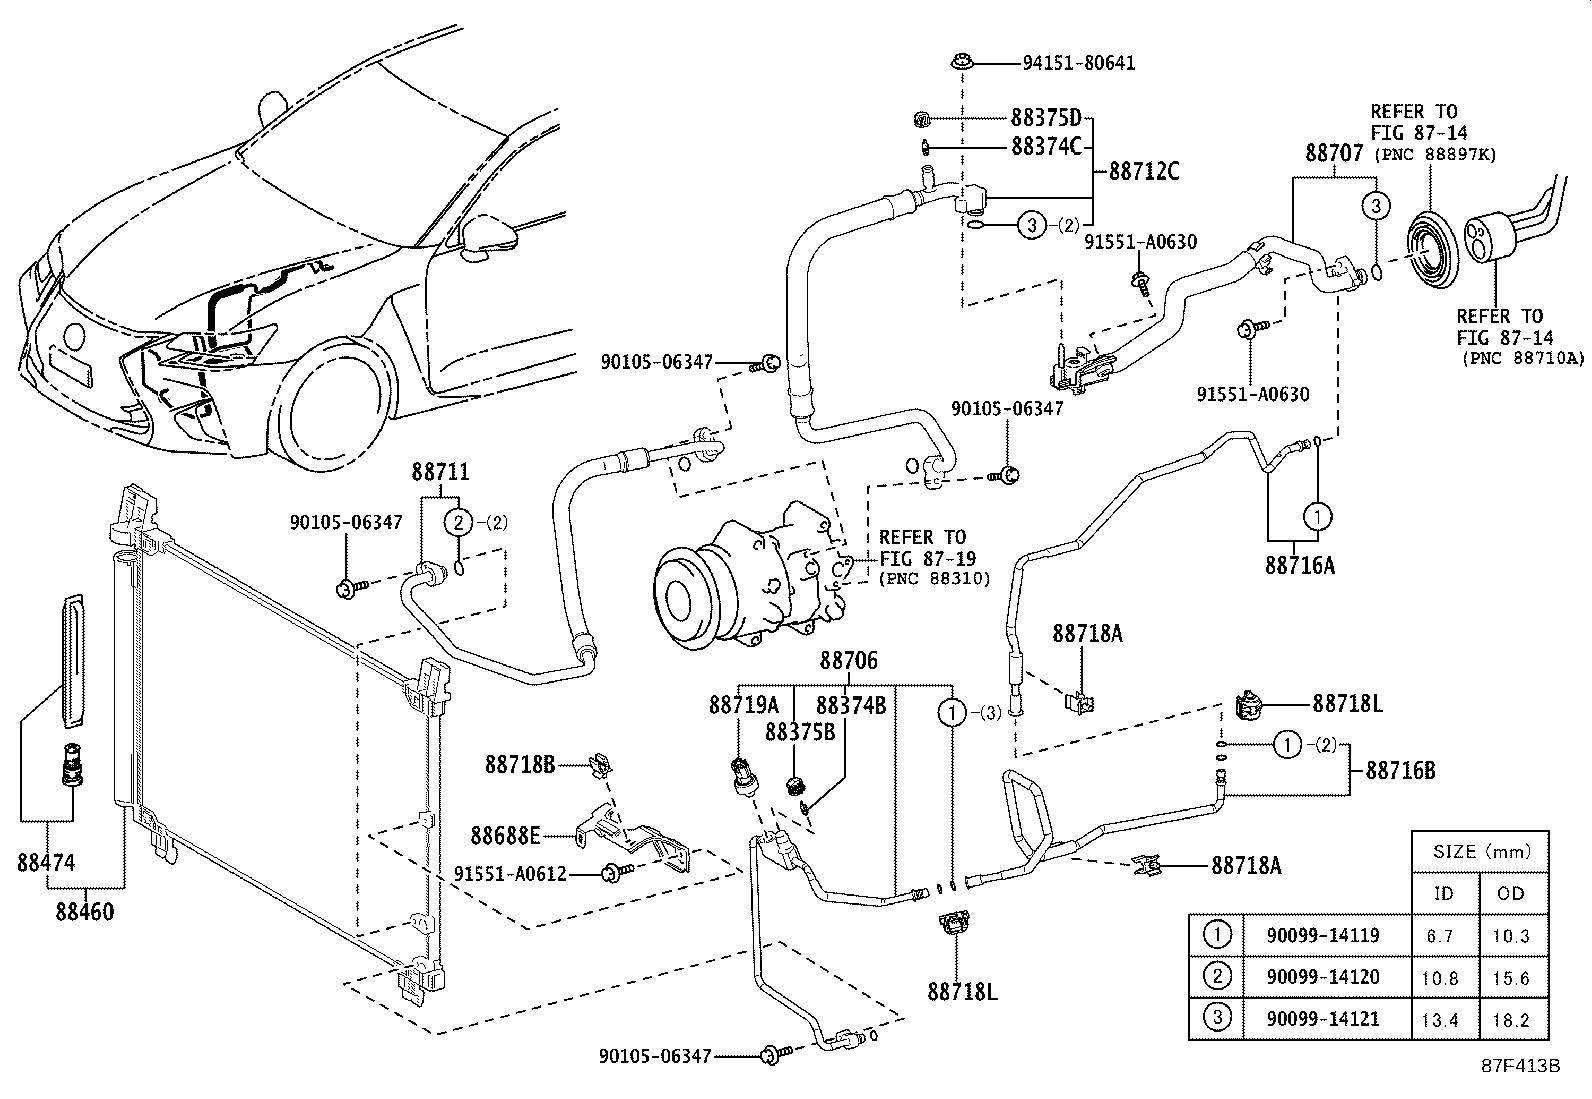 Lexus Pipe Sub Assembly Suction Conditioning Air